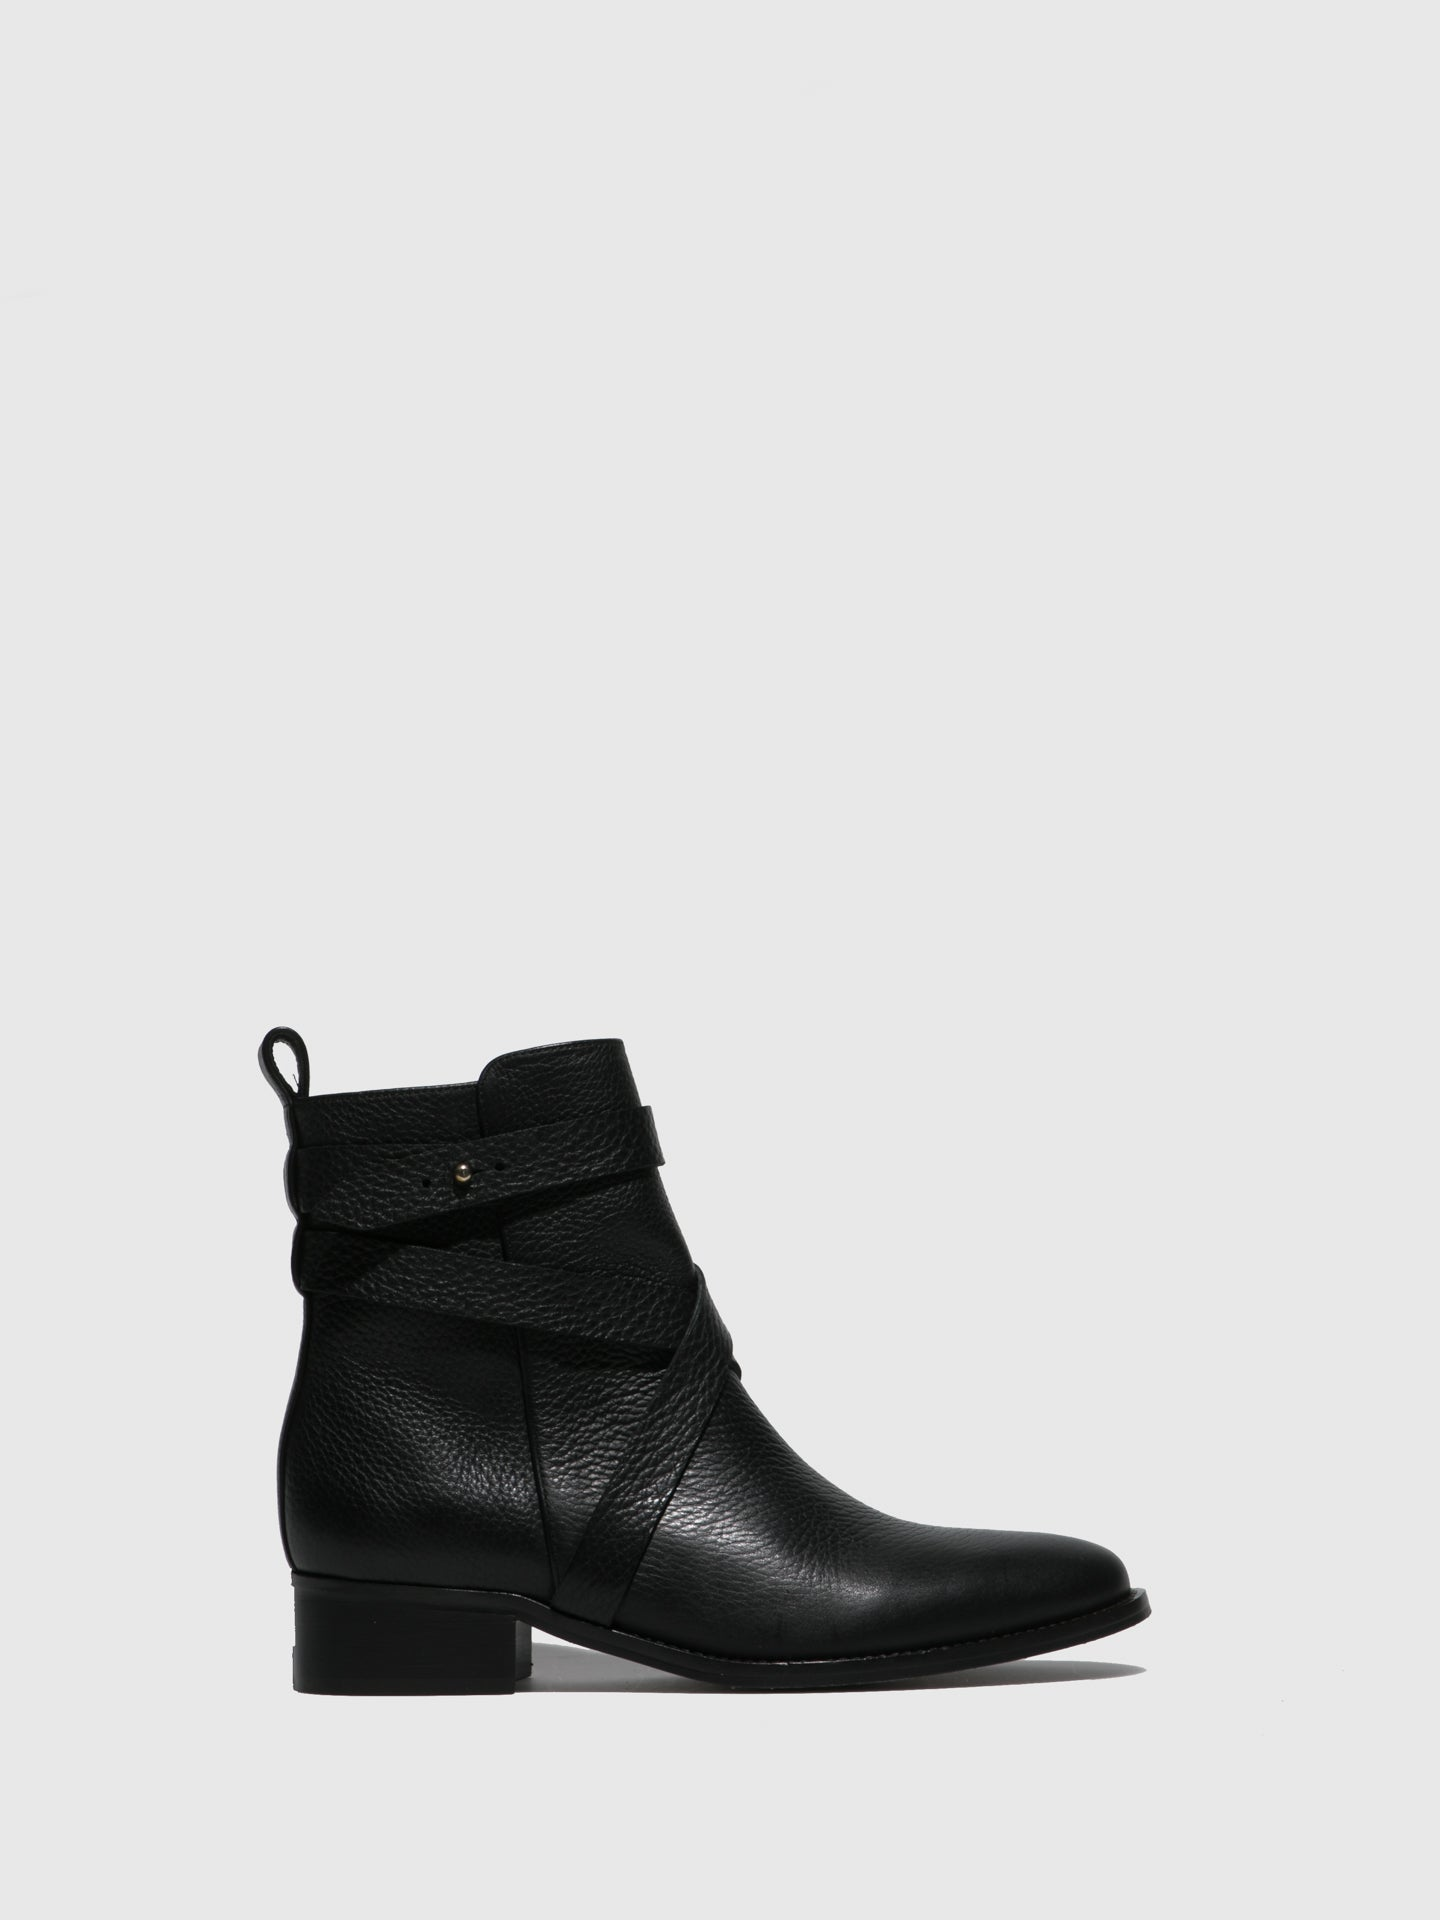 JJ Heitor Black Zip Up Ankle Boots